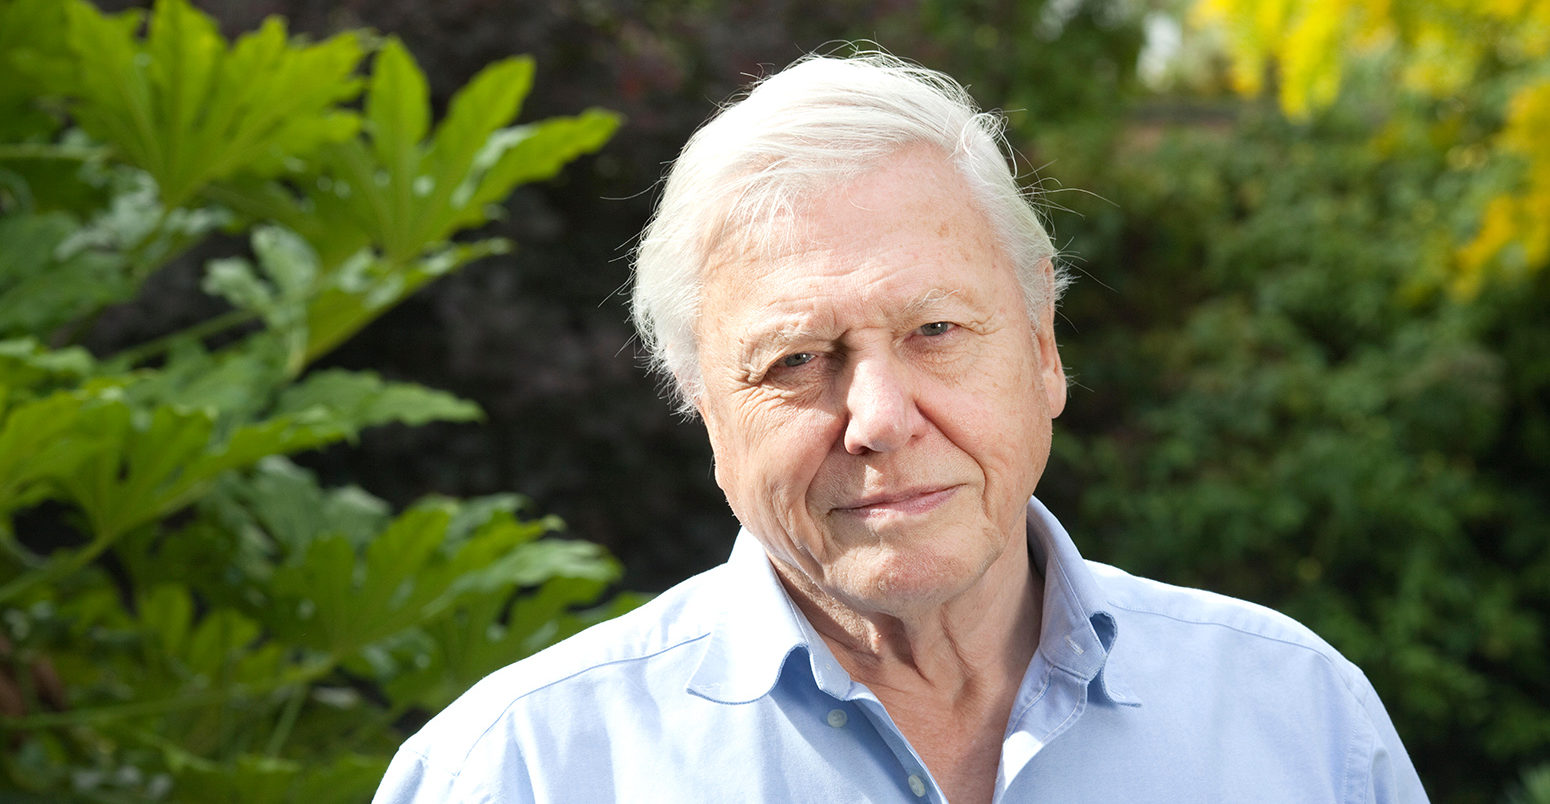 David Attenborough joins Instagram to help 'world in trouble'